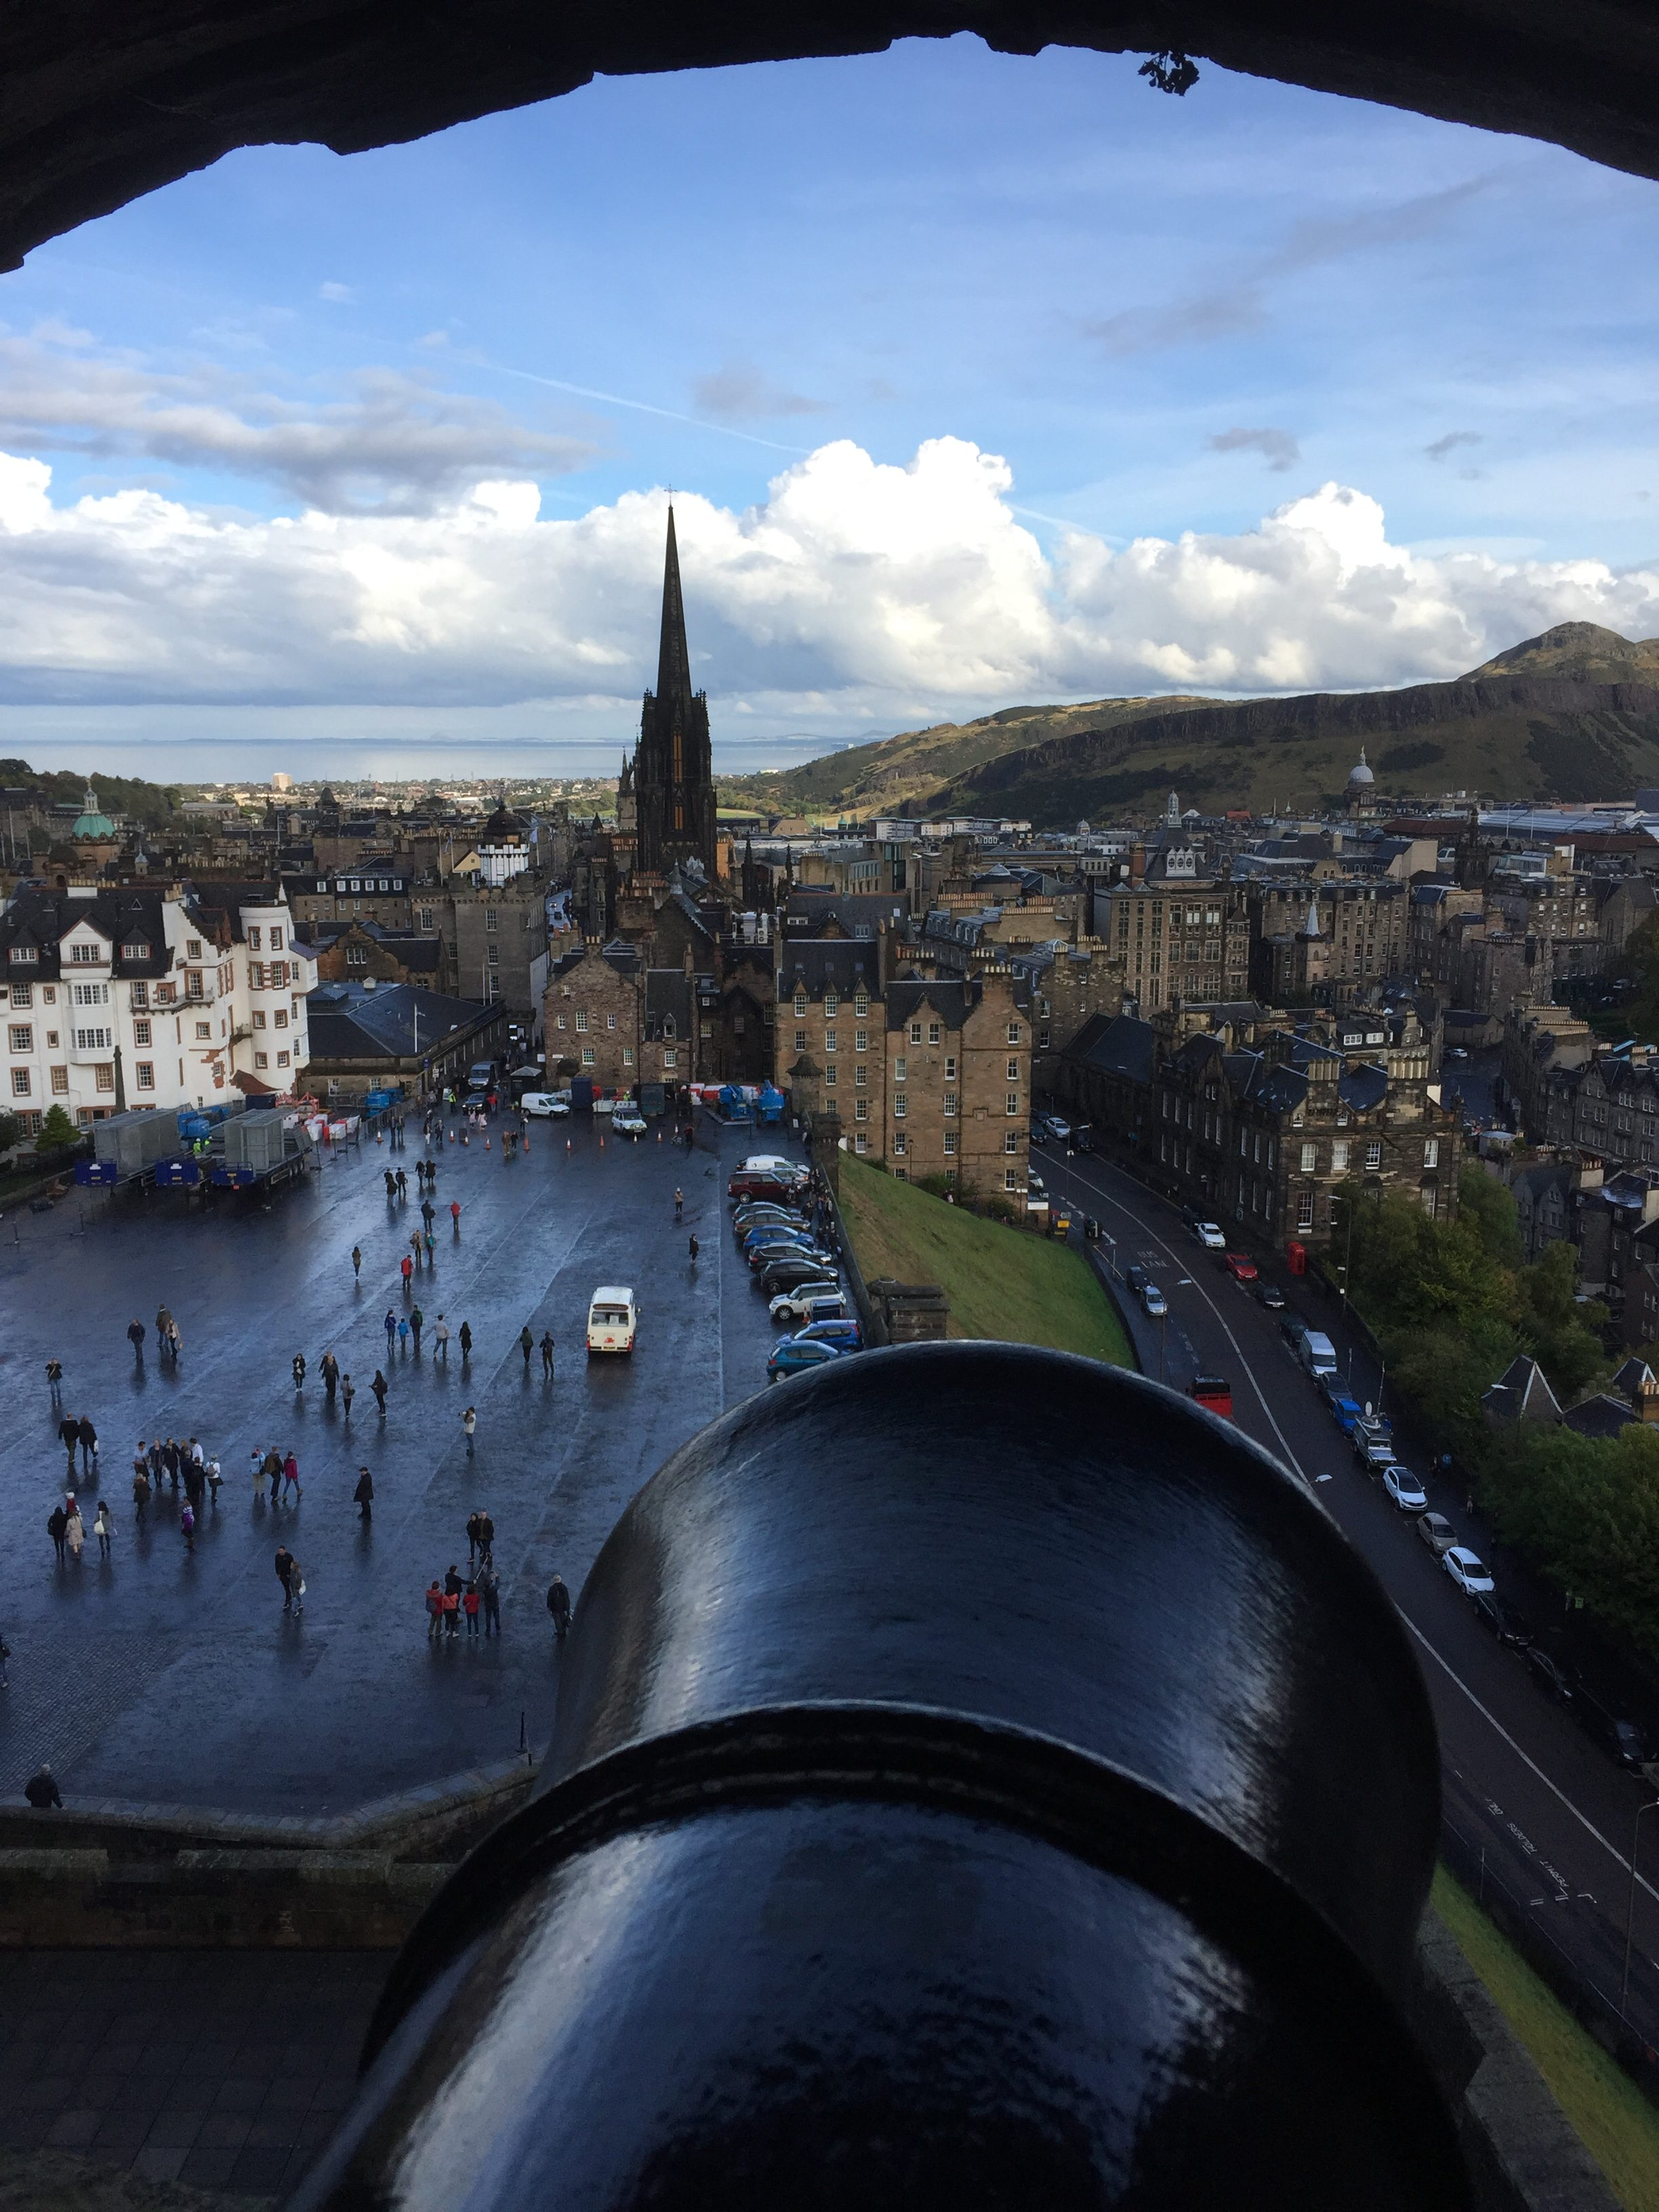 View of the city of Edinburgh while looking over one of the cannons at Edinburgh Castle.